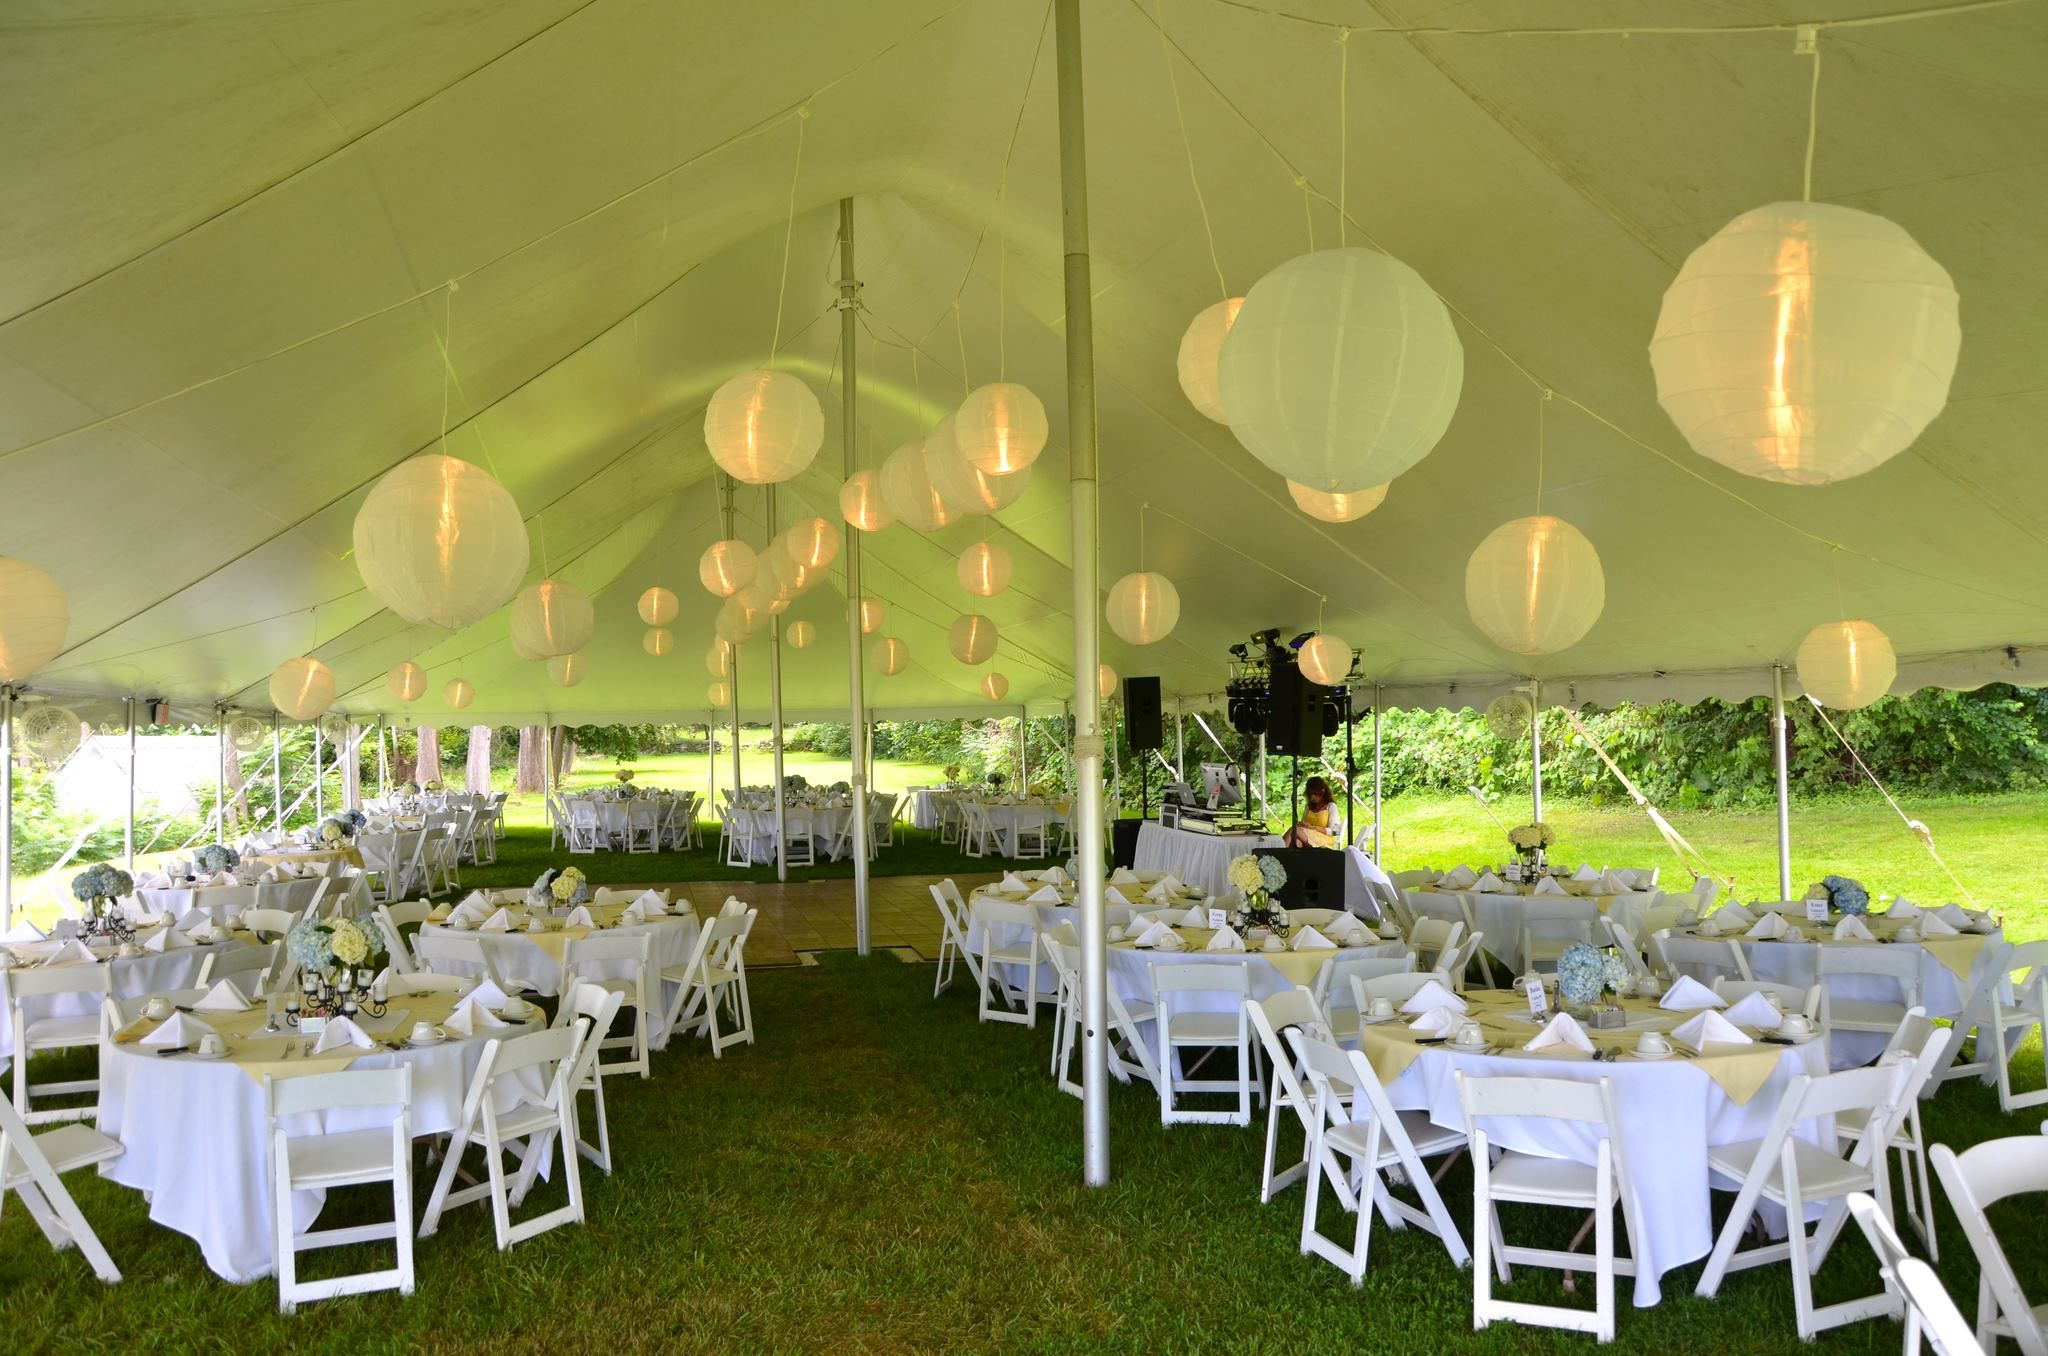 Taylor Rental Party Plus Party Rentals In Plattsburgh Ny Saranac Lake Ny And Equipment Rentals In Plattsbu Tent Lighting Japanese Lanterns Tent Decorations